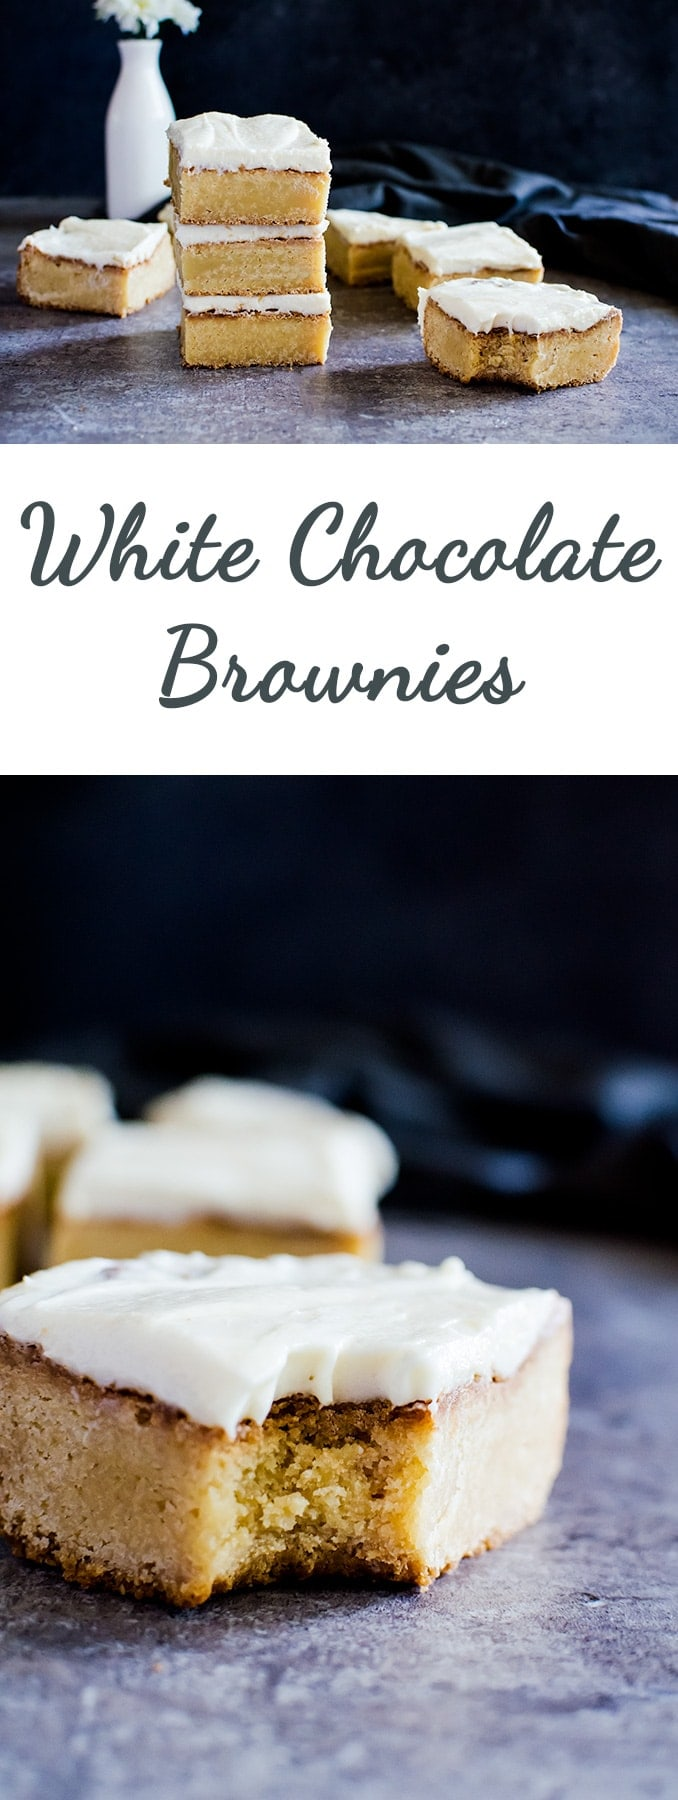 A wonderfully irresistible white chocolate brownie